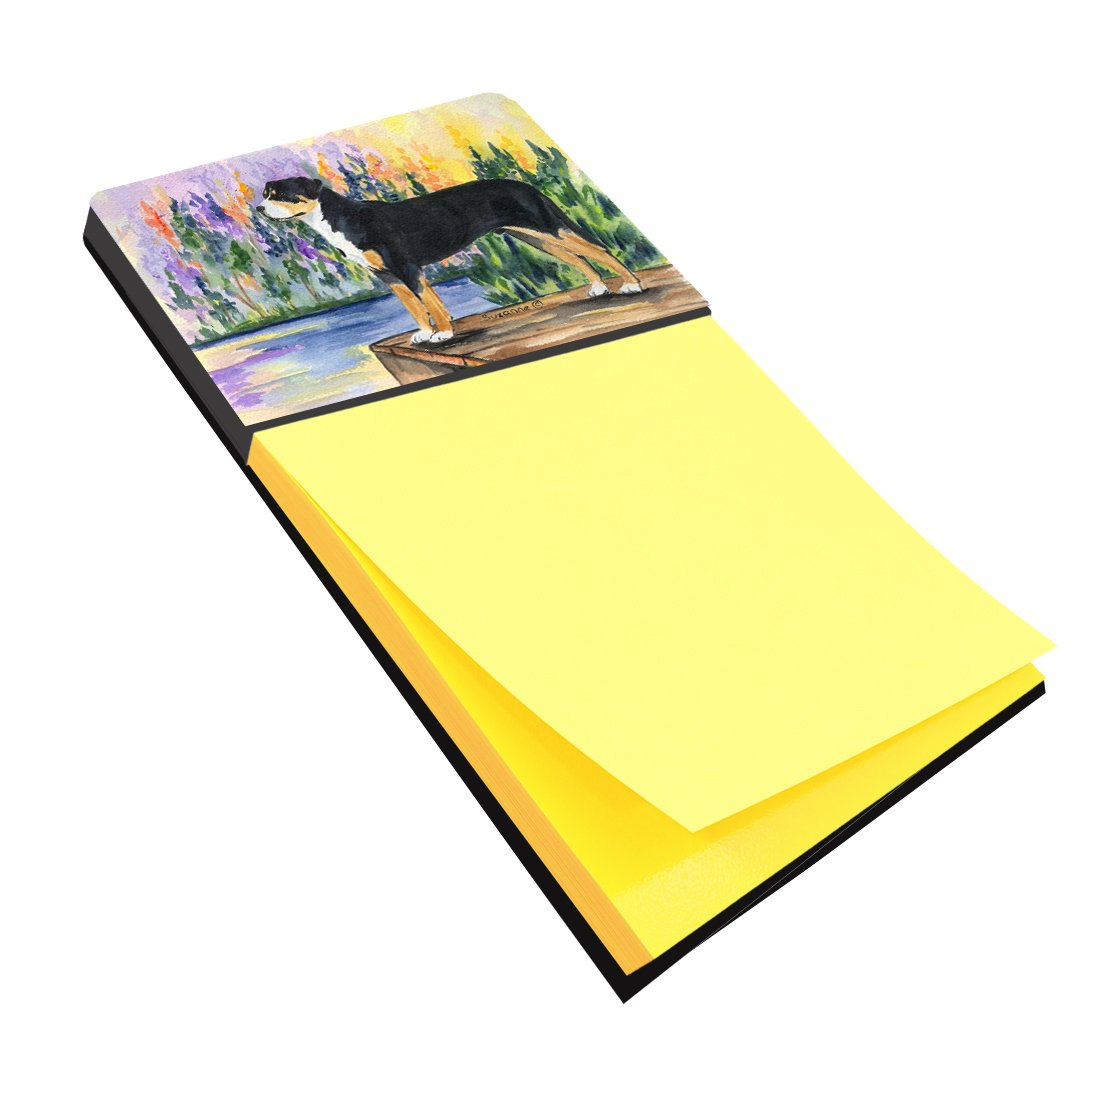 Caroline's Treasures SS8160SN Greater Swiss Mountain Dog Refiillable Sticky Note Holder or Postit Note Dispenser, Large, Multicolor